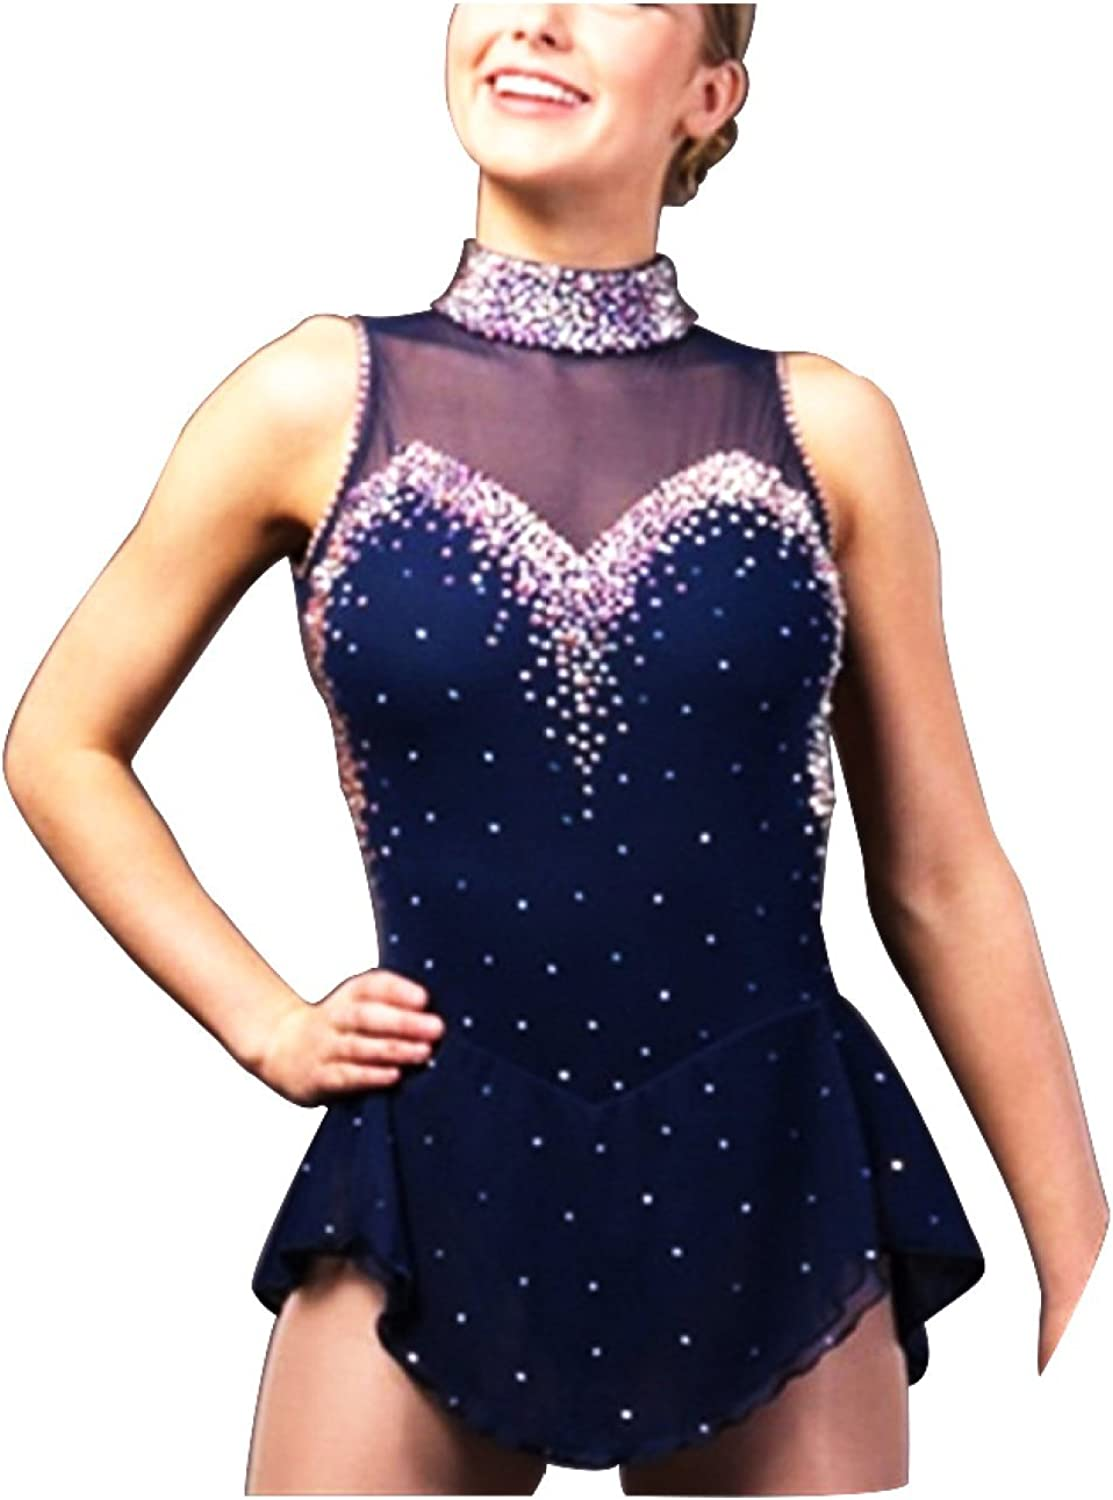 GZHGF Handmade Ice Skating Dress For Women And Girls Mesh Sexy Backless Competition Professional Dress Leotard Dark blueee